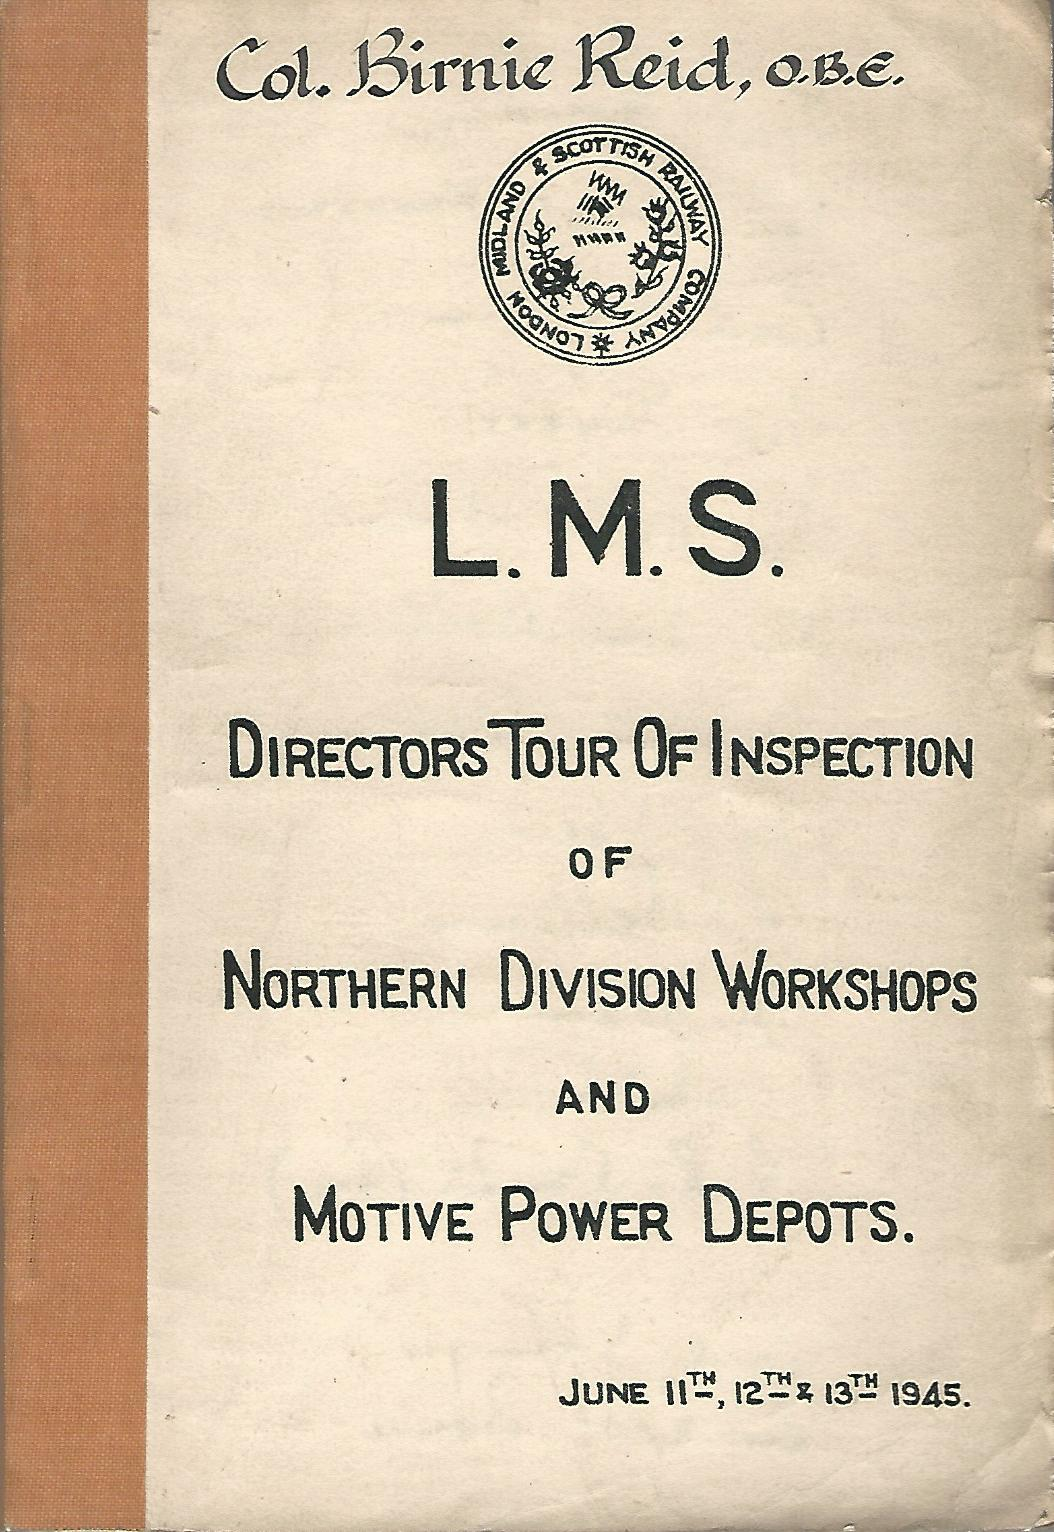 Image for L.M.S. Directors Tour of Inspection of Northern Division Workshops and Motive Power Depots June 11th, 12th, & 13th 1945.